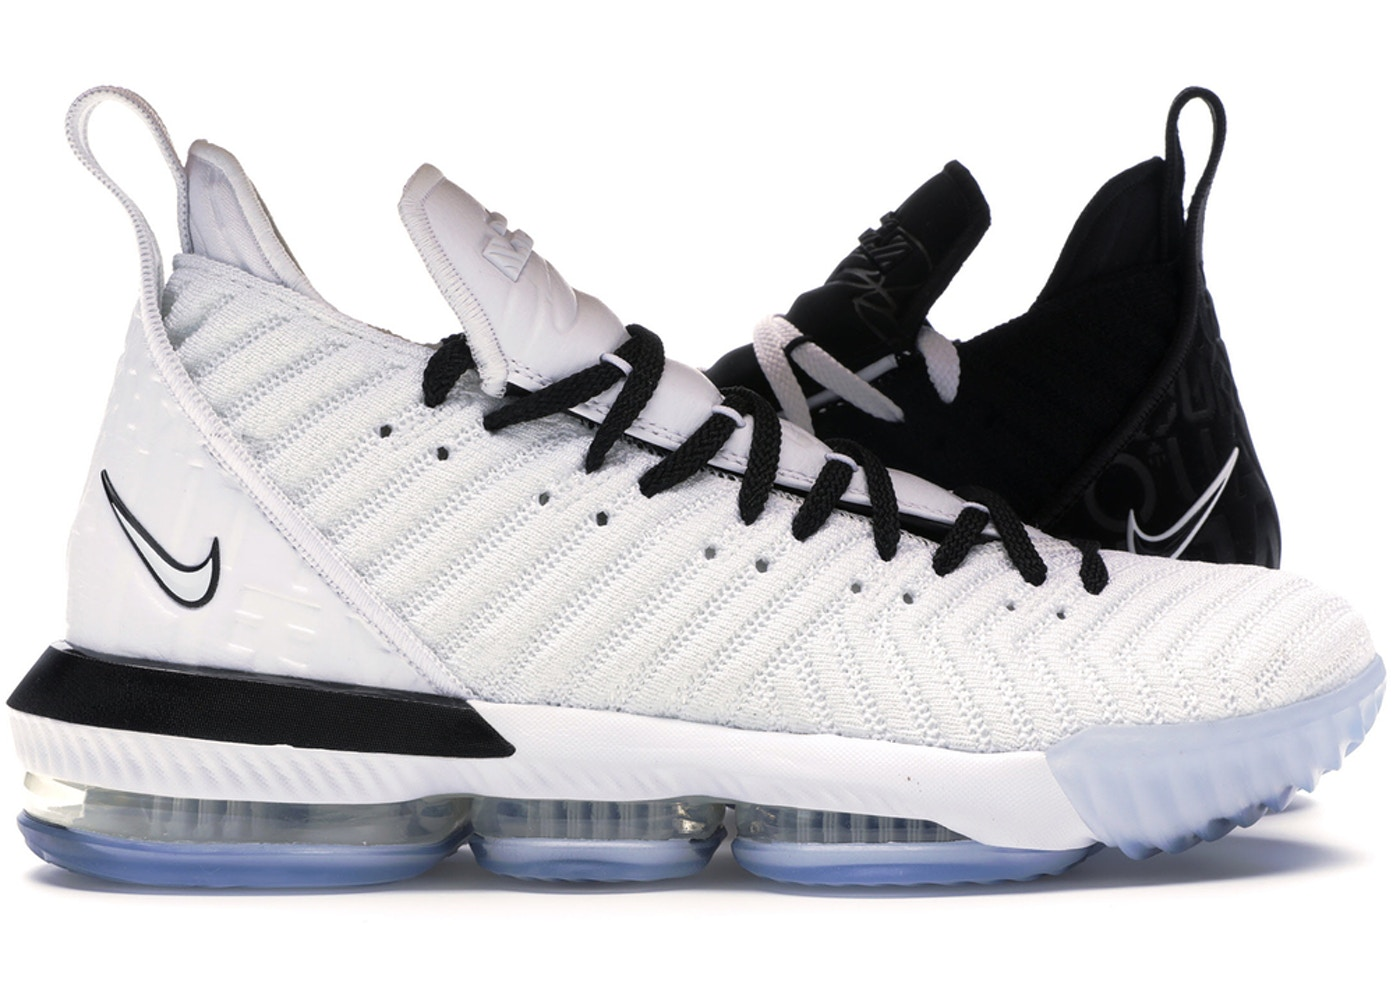 740baab5cb608a Buy LeBron Shoes   Deadstock Sneakers